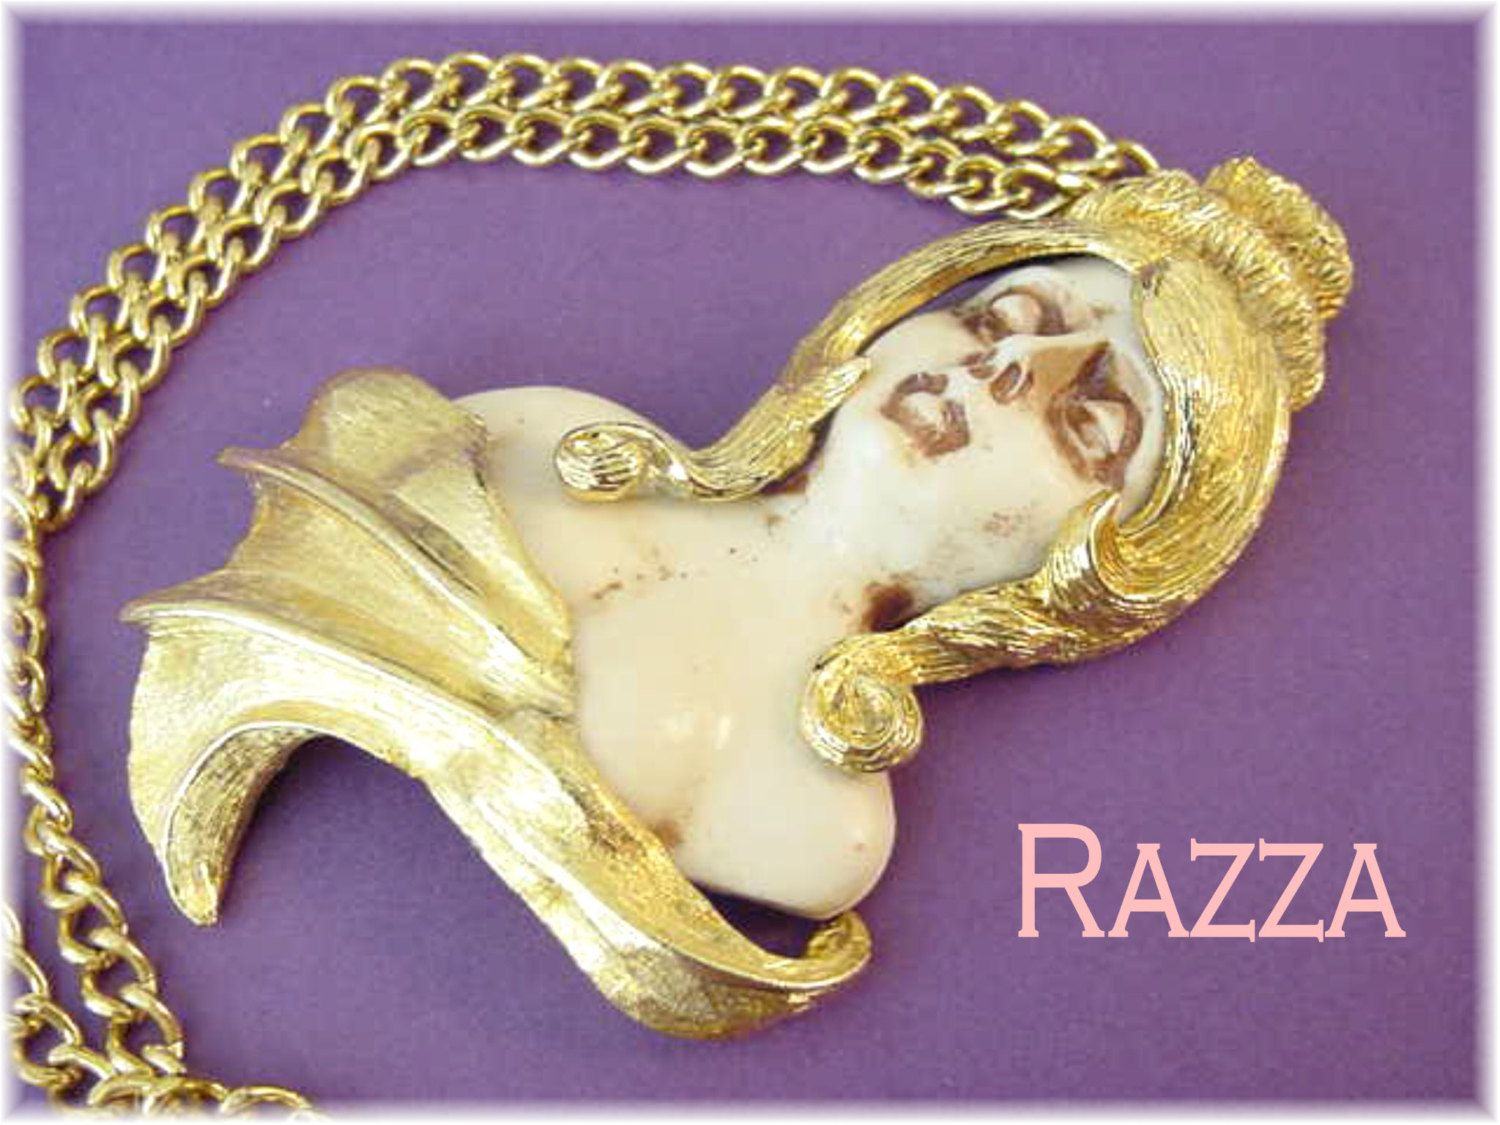 Razza - Virgo Zodiac Pendant Chain Necklace - August Horoscope - Figural Lady Goddess - Statement Jewellery - FREE SHIPPING